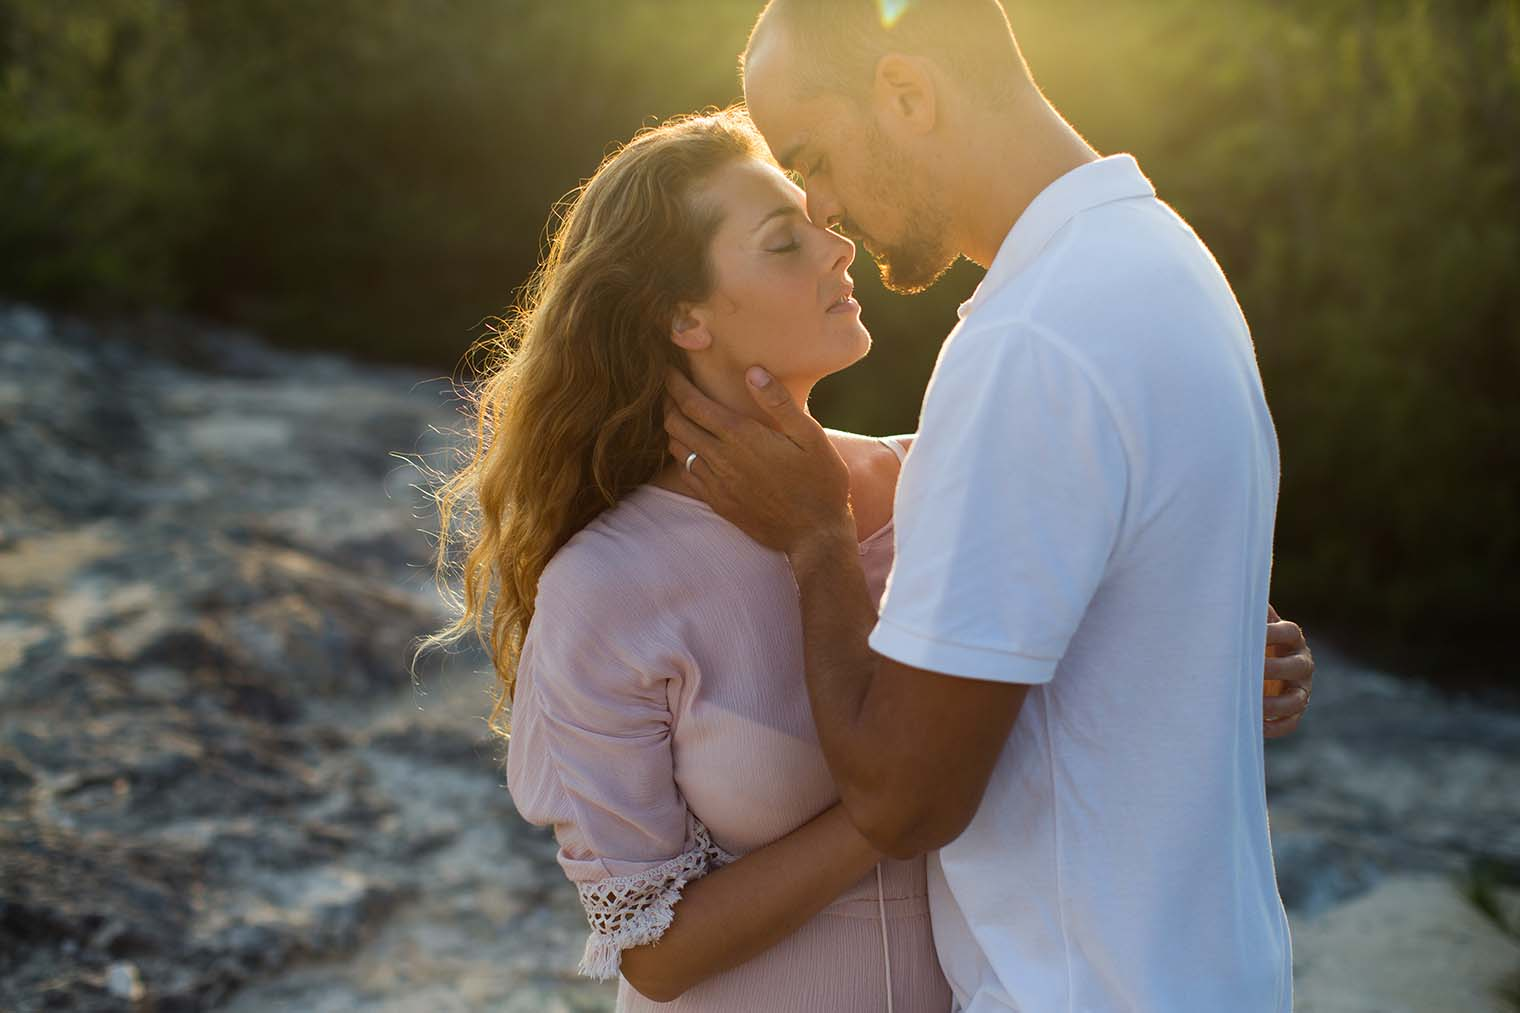 Sunset engagement session at Maha'ulepu Trailhead